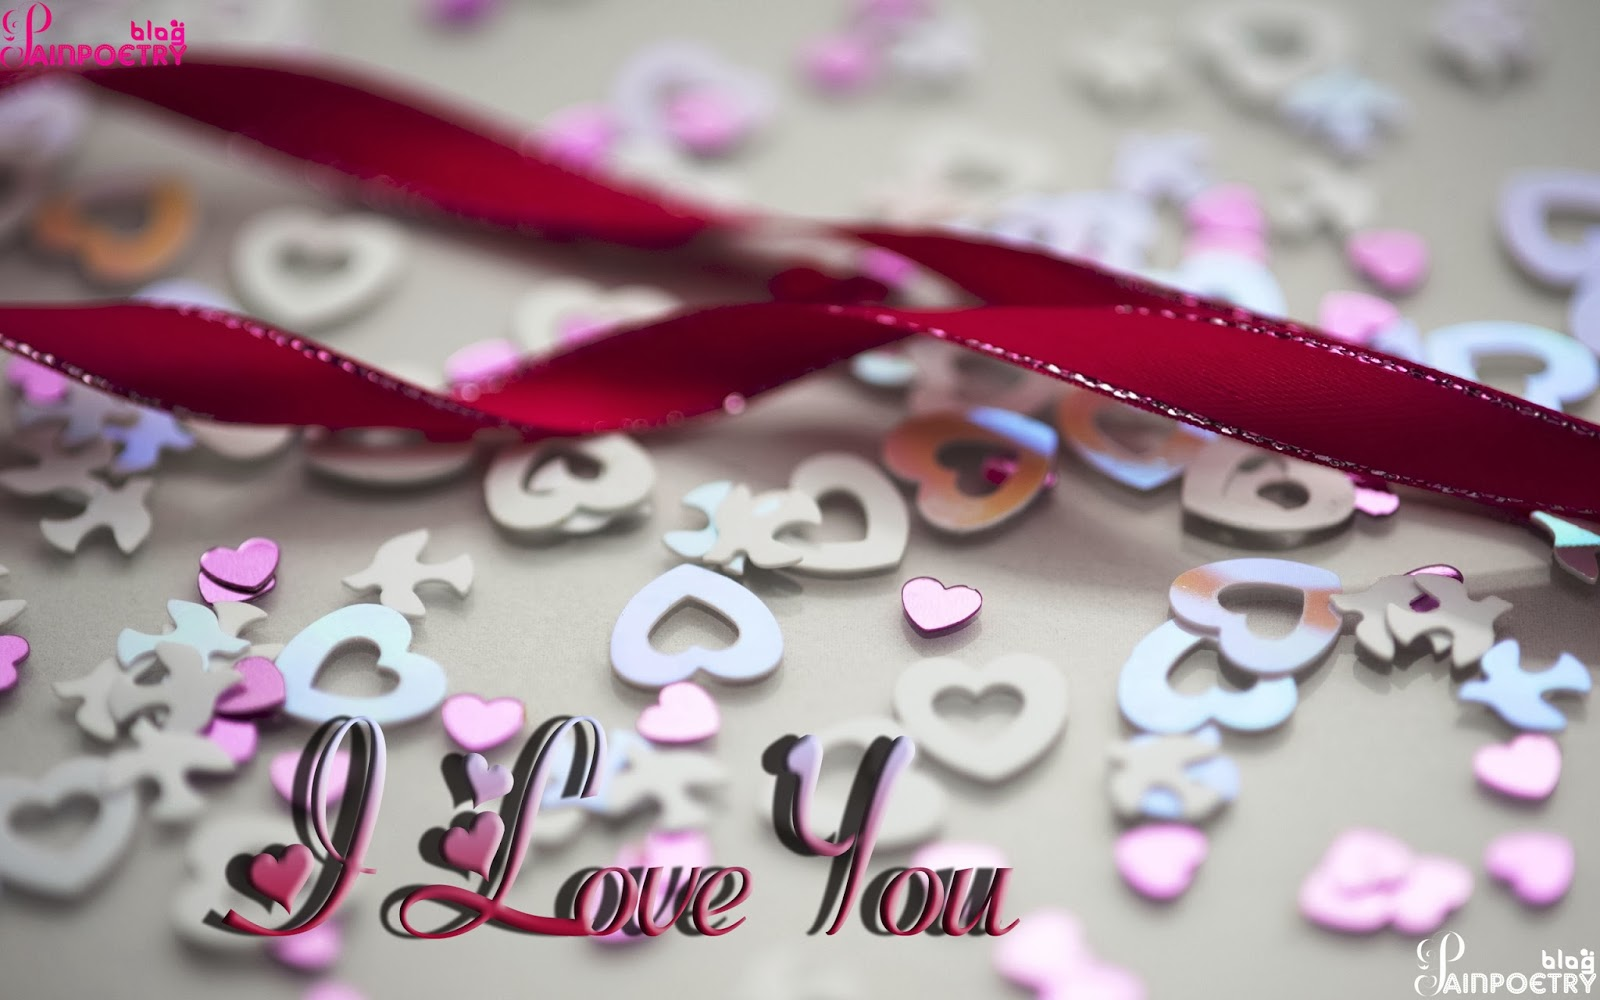 Love-Wishes-Wallpaper-With-Lot-Of-Hearts-Droped-On-Floor-With-Ribbon-Image-HD